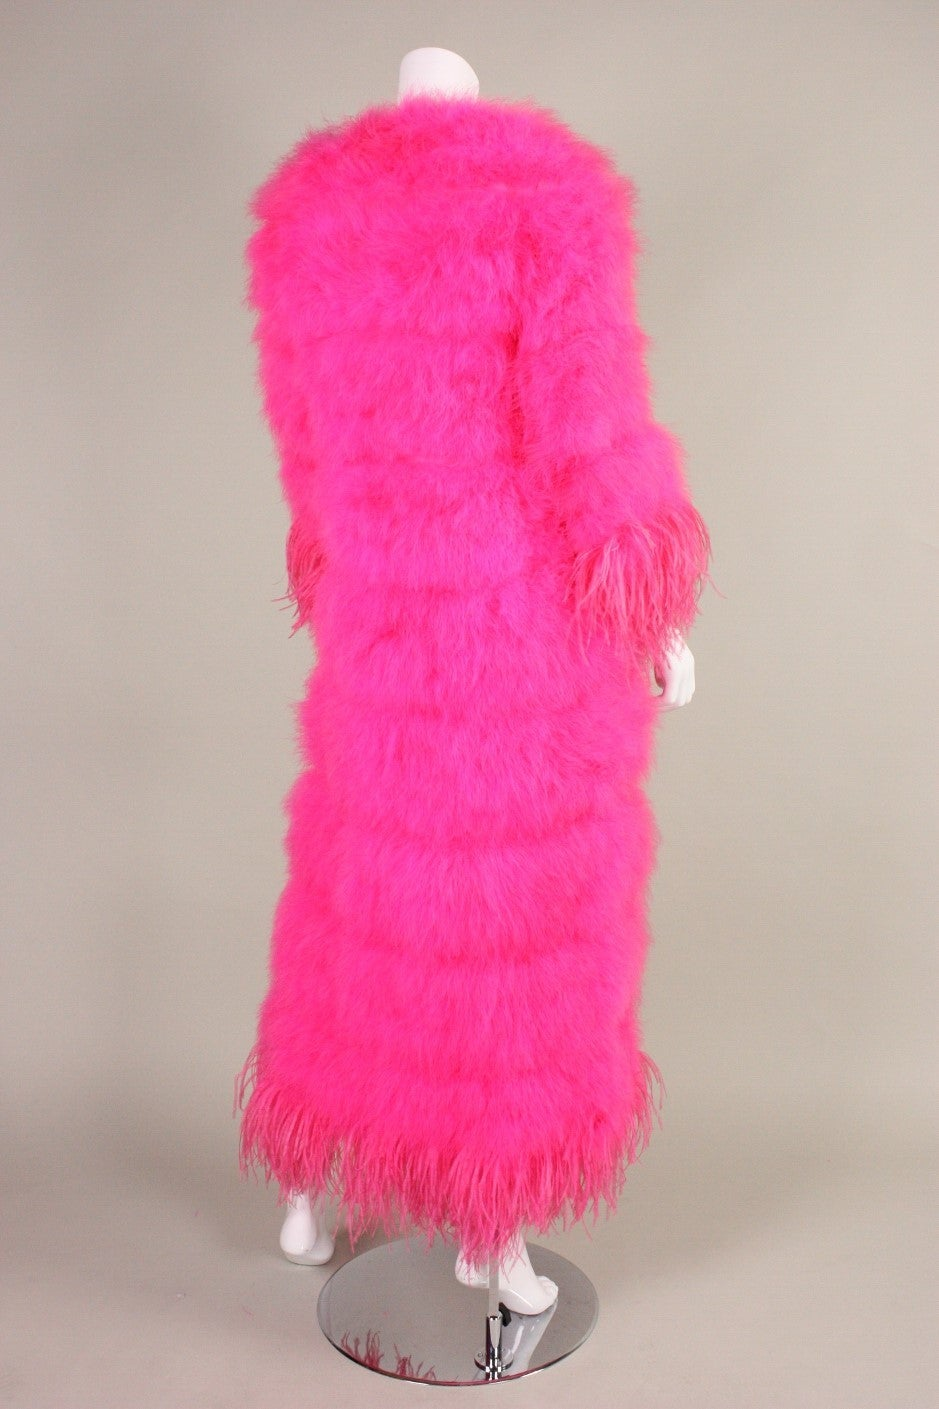 Full-Length Hot Pink Marabou Coat with Ostrich Feather Trim In Excellent Condition For Sale In Los Angeles, CA